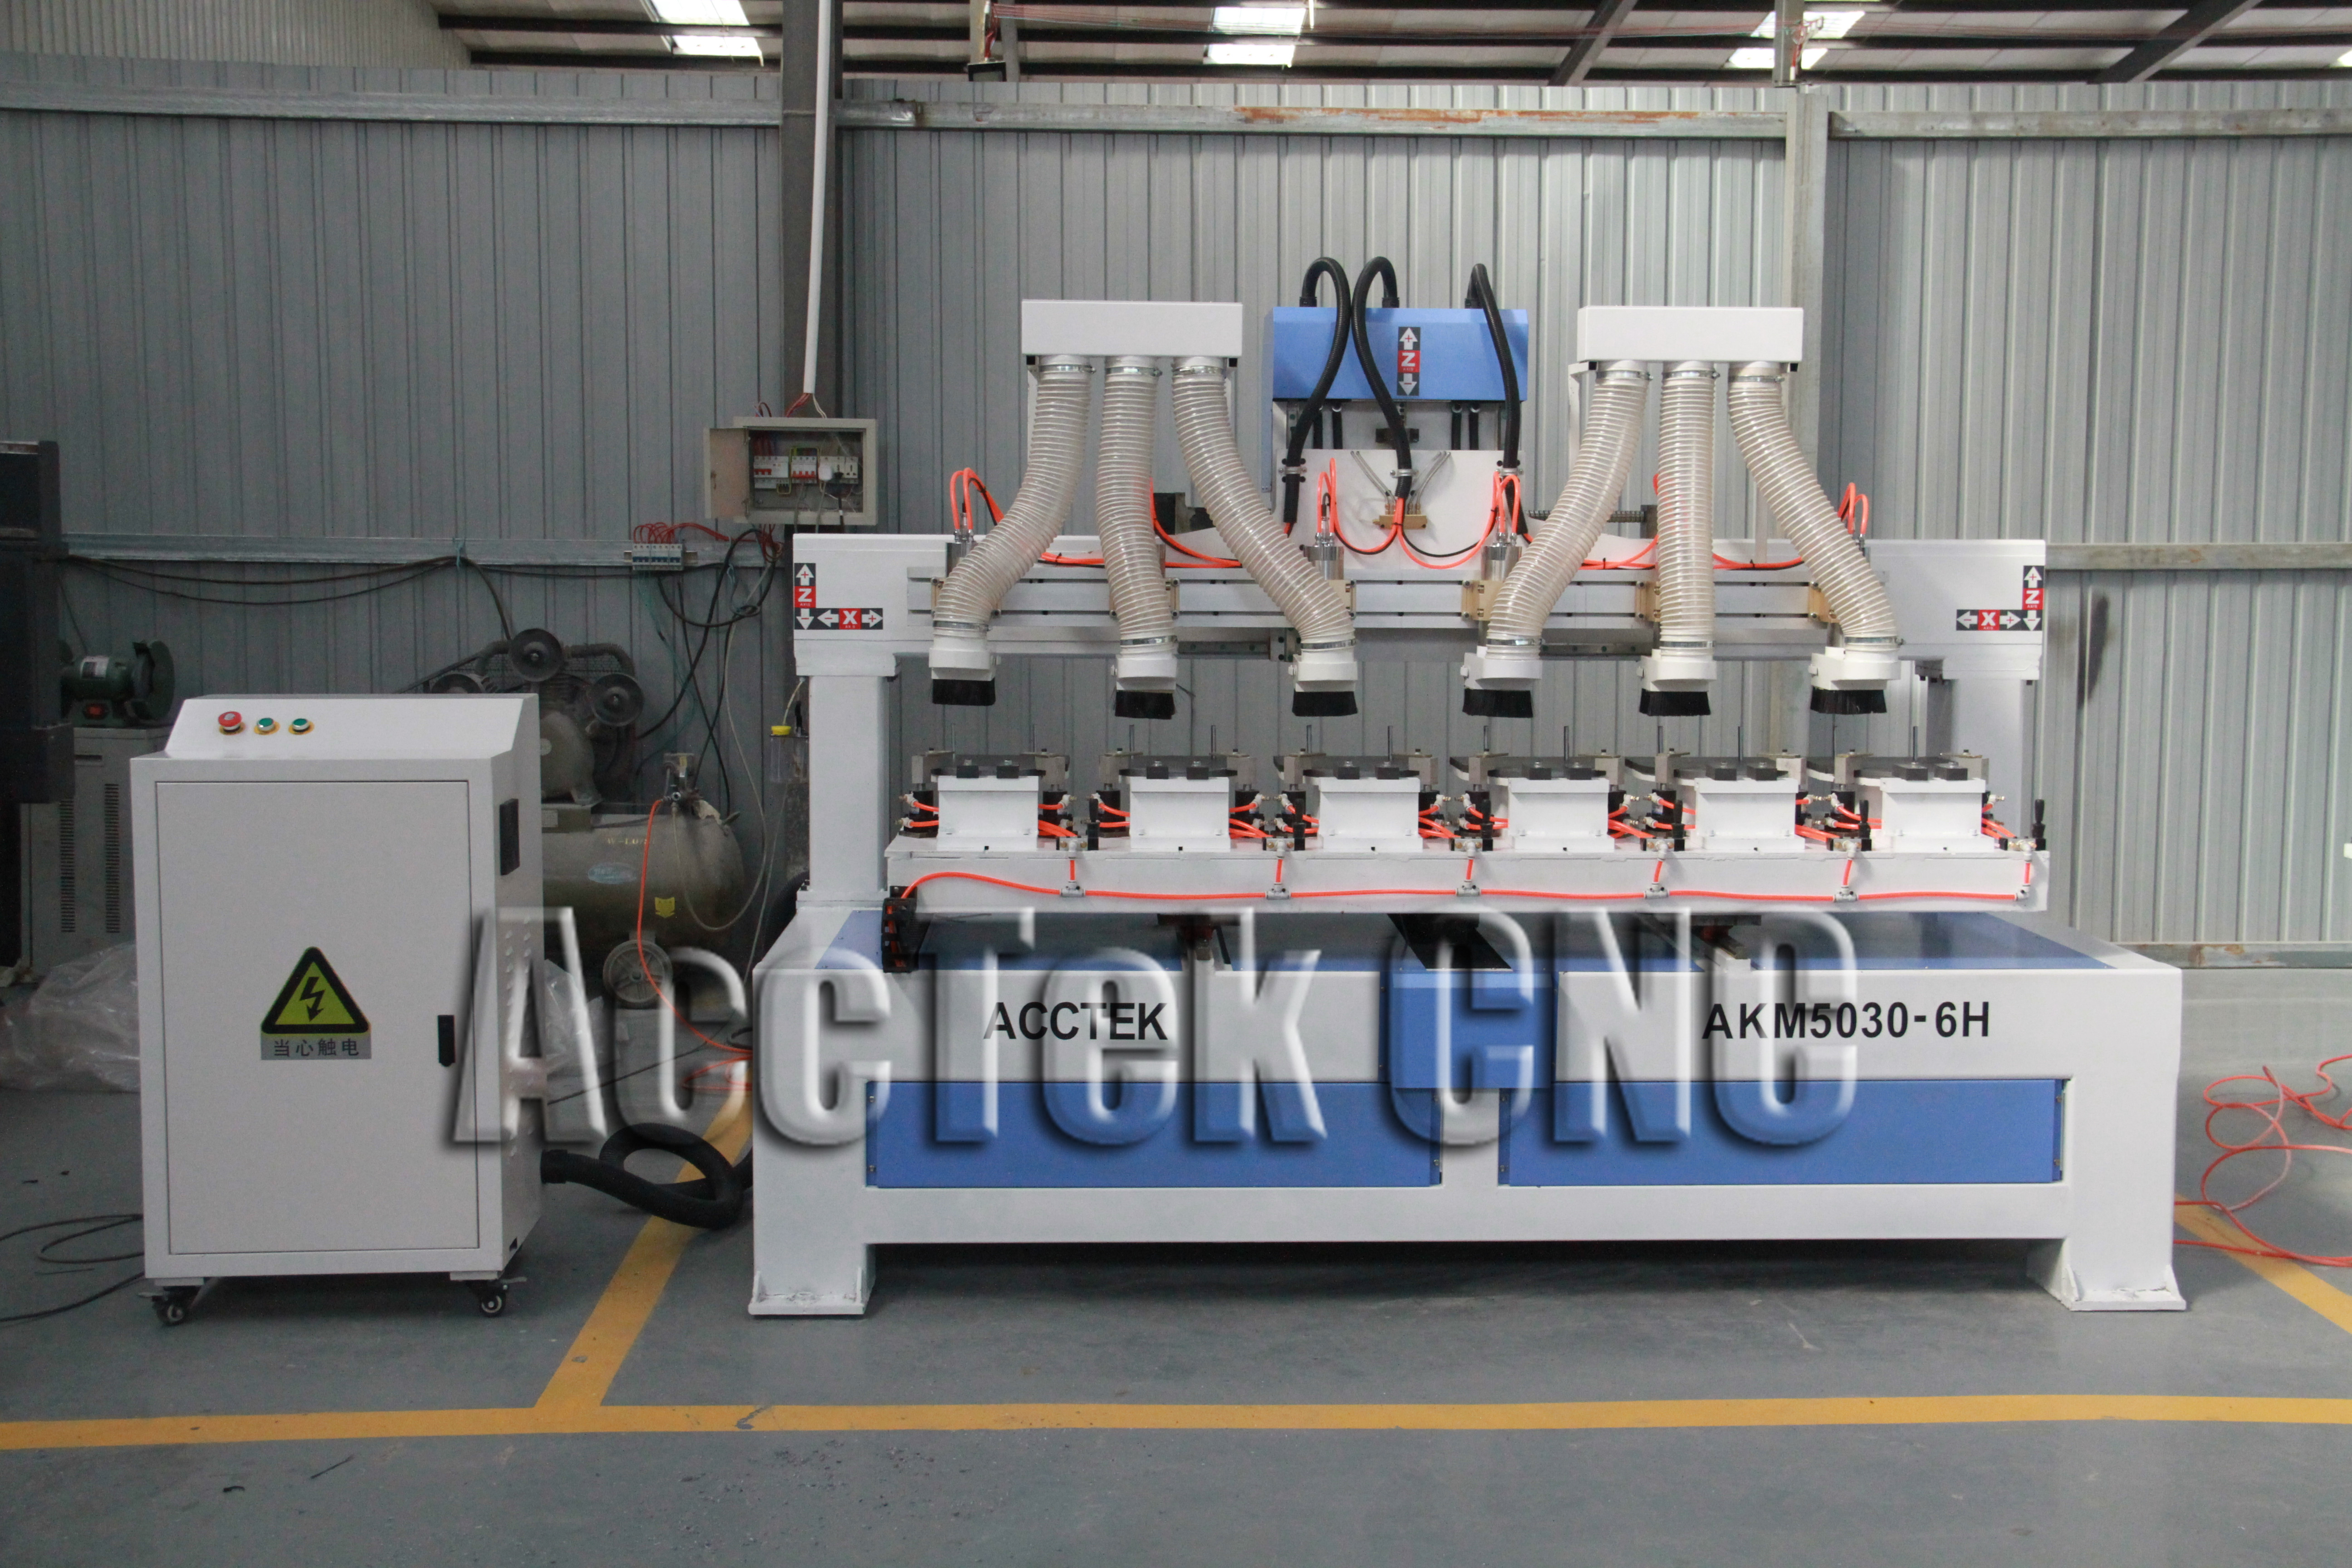 Multi Heads Racket Engraving Machine With DSP Controller Carbon Paddle Racquet CNC Router For Racket